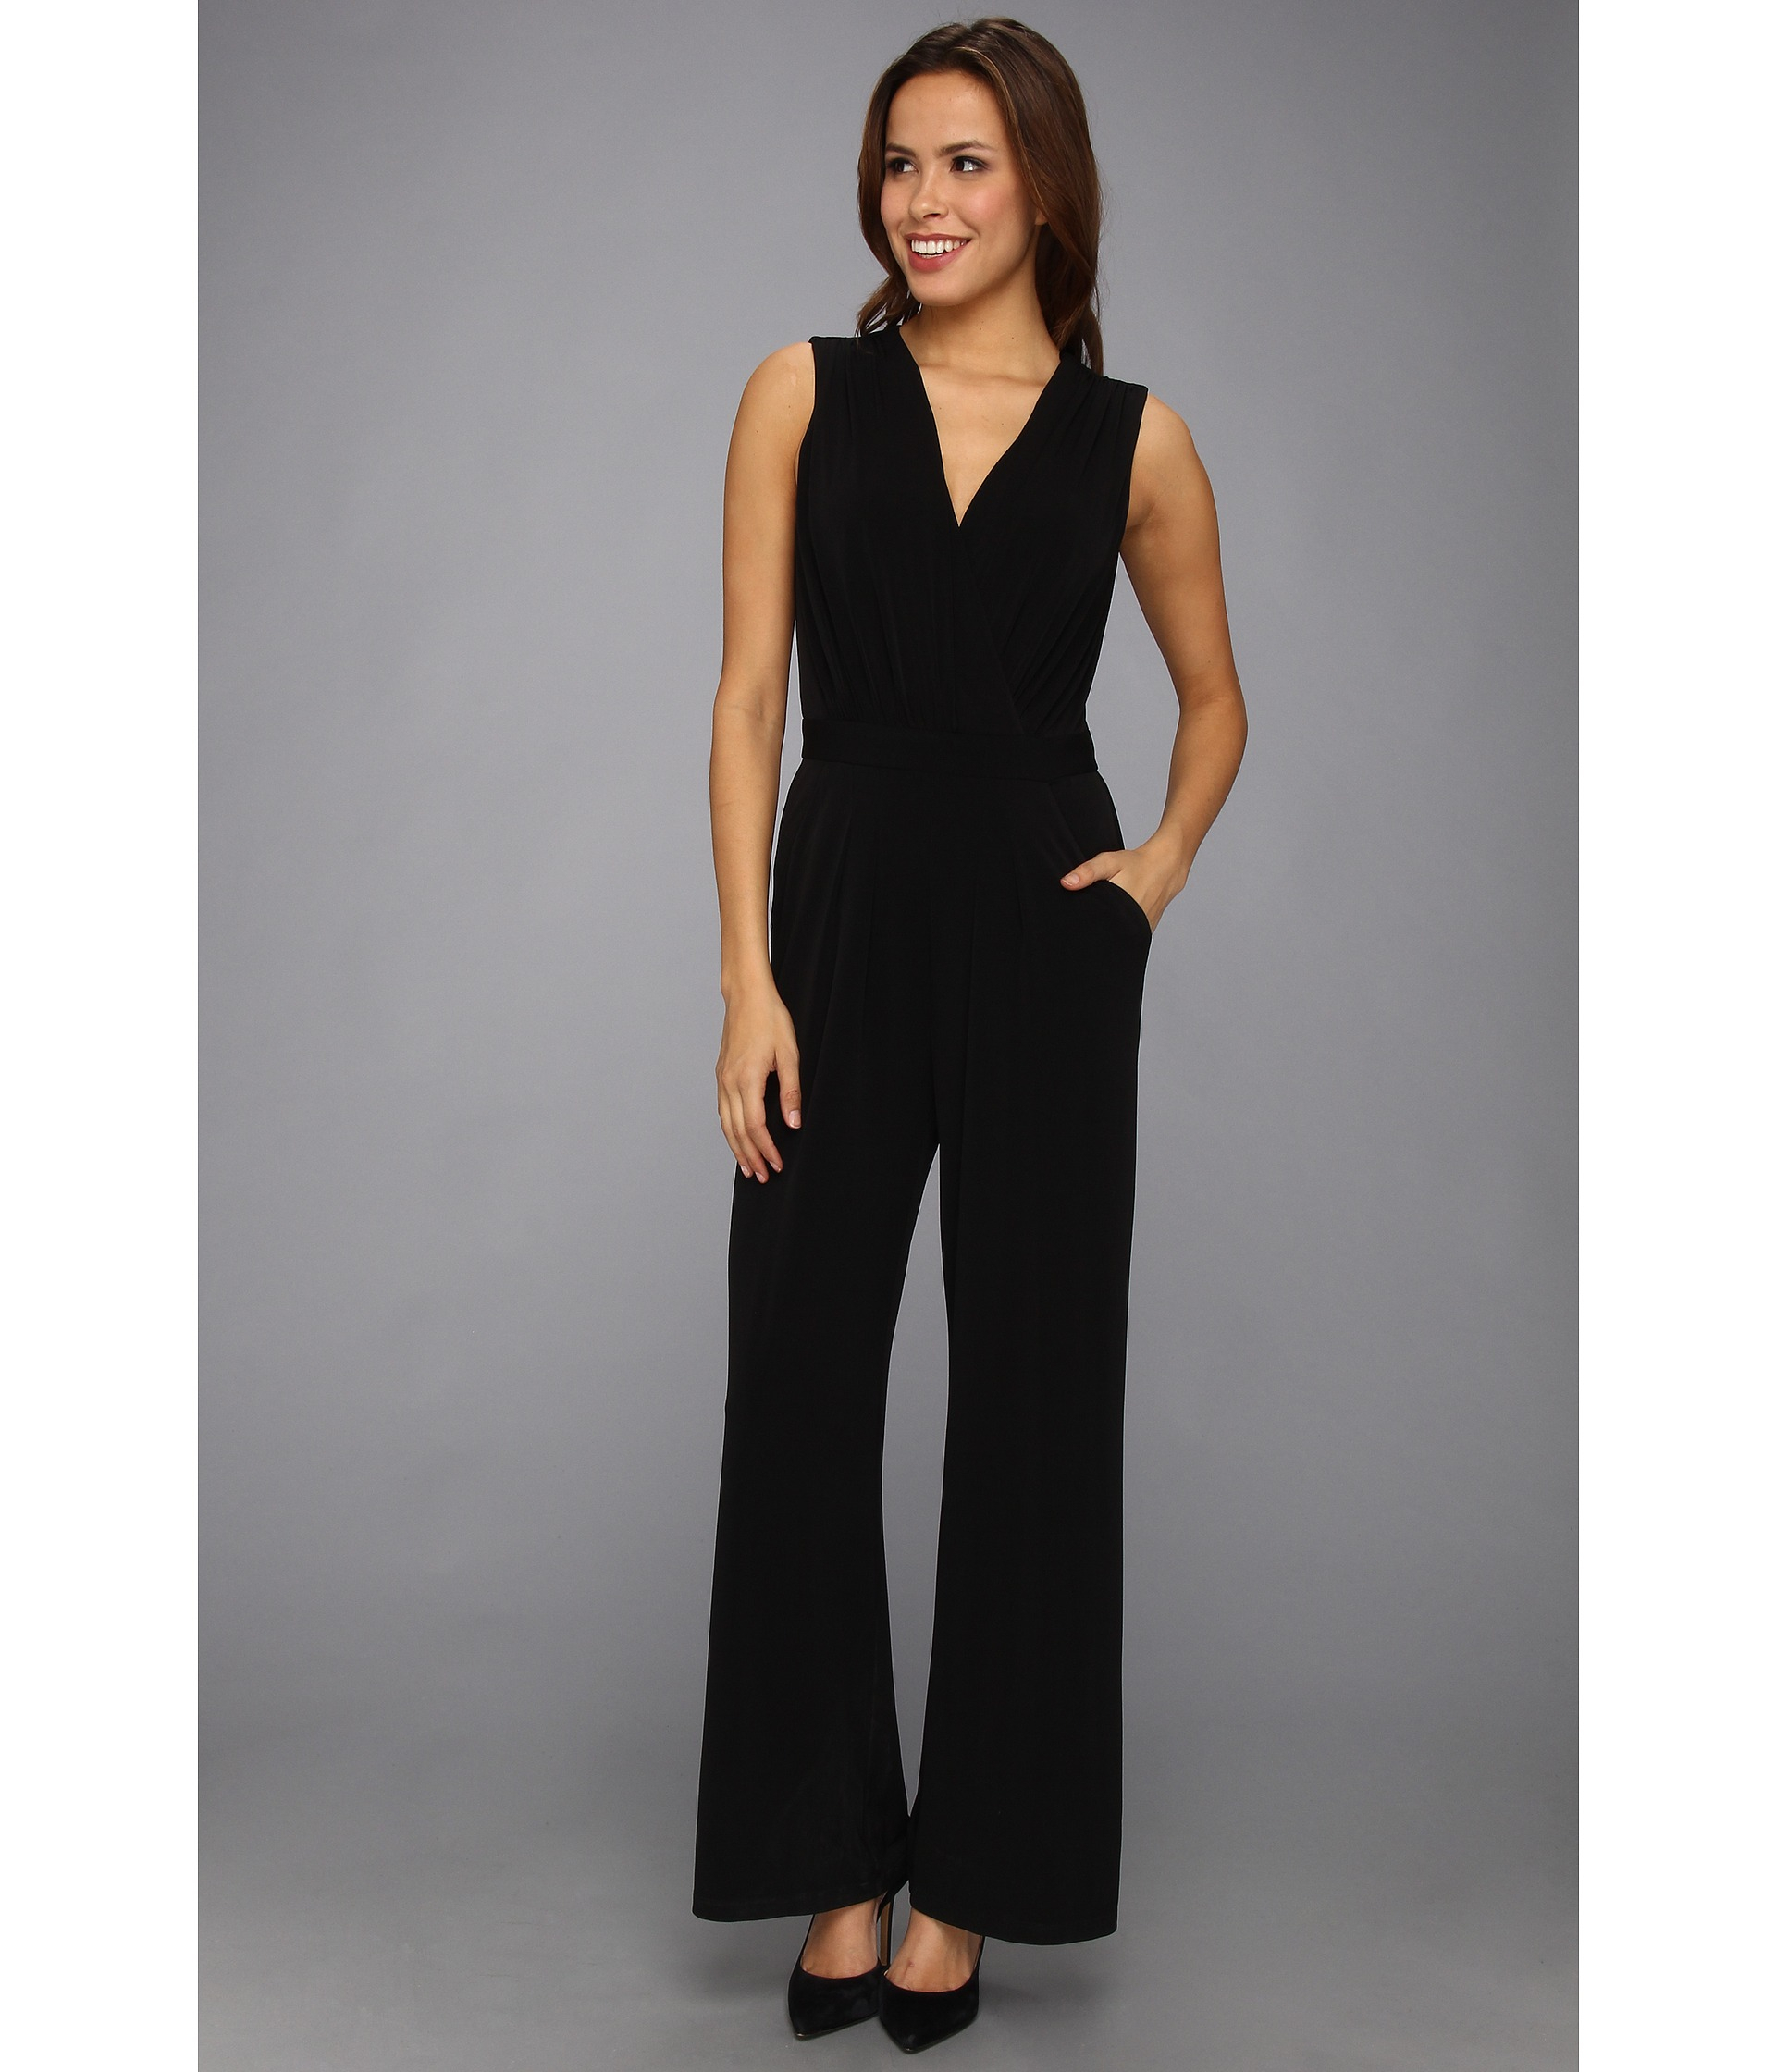 Lyst Vince Camuto Vneck Faux Wrap Jumpsuit Dress In Black